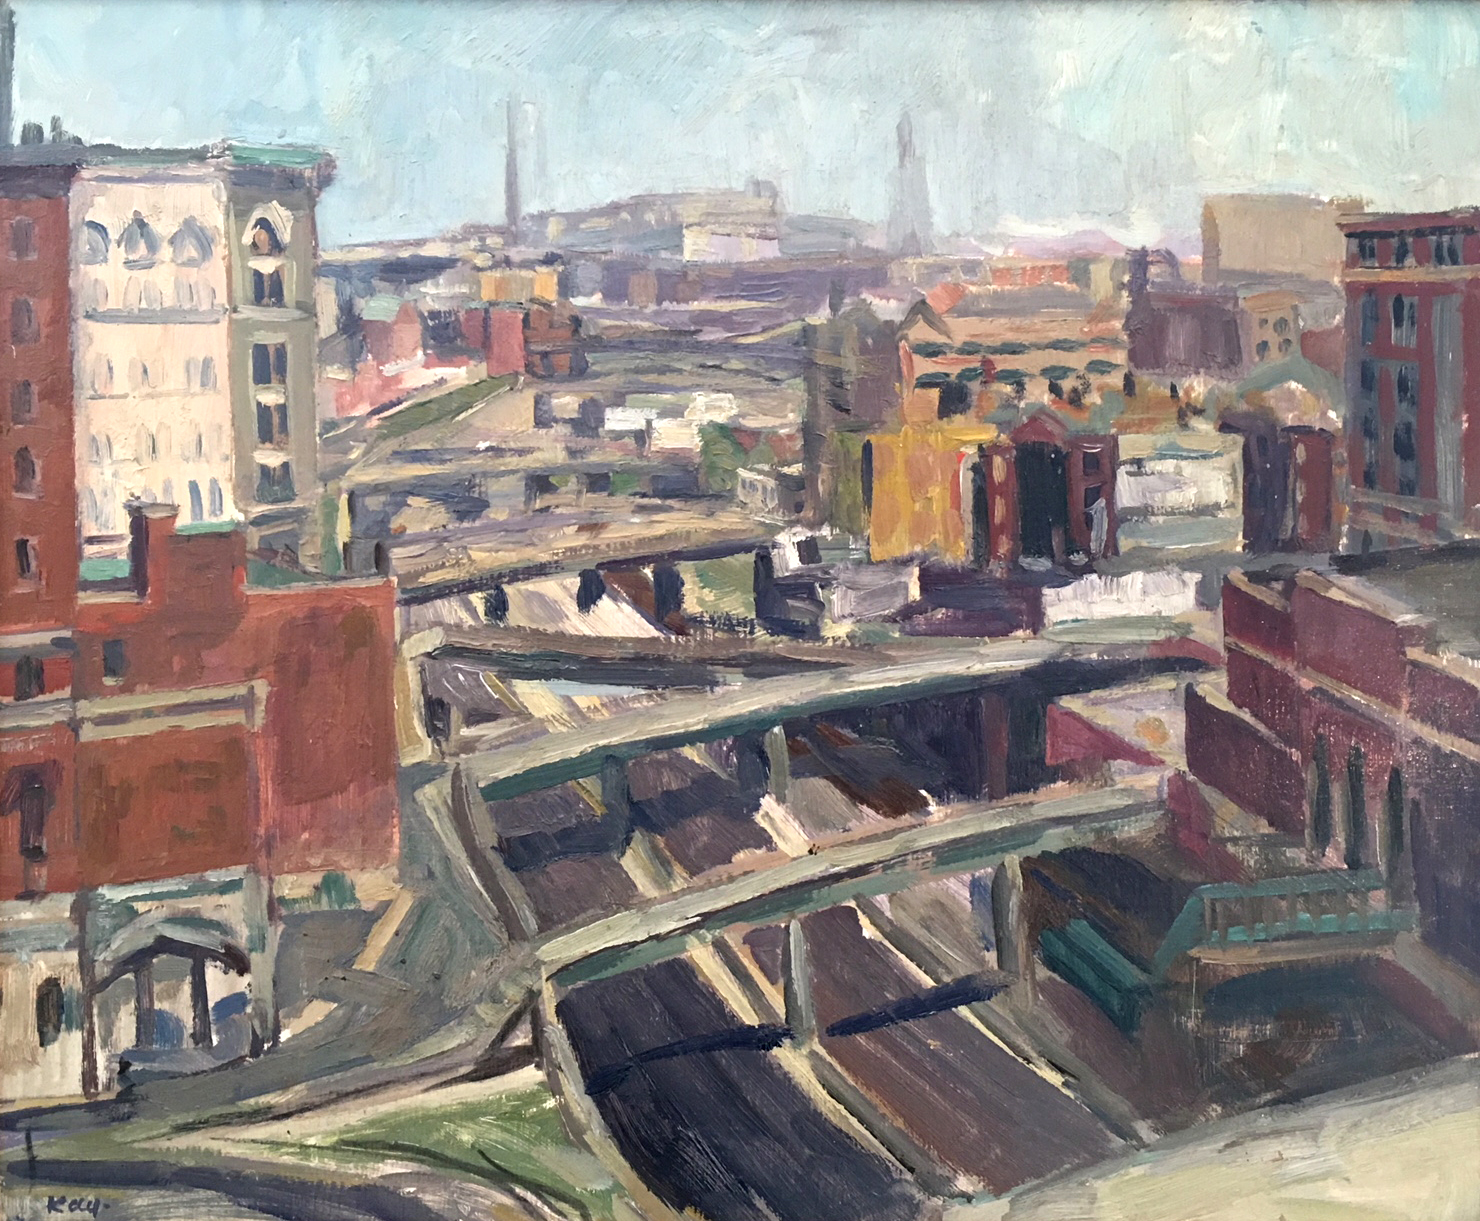 Overpasses,  1969 oil on canvas, 15 x 18 inches